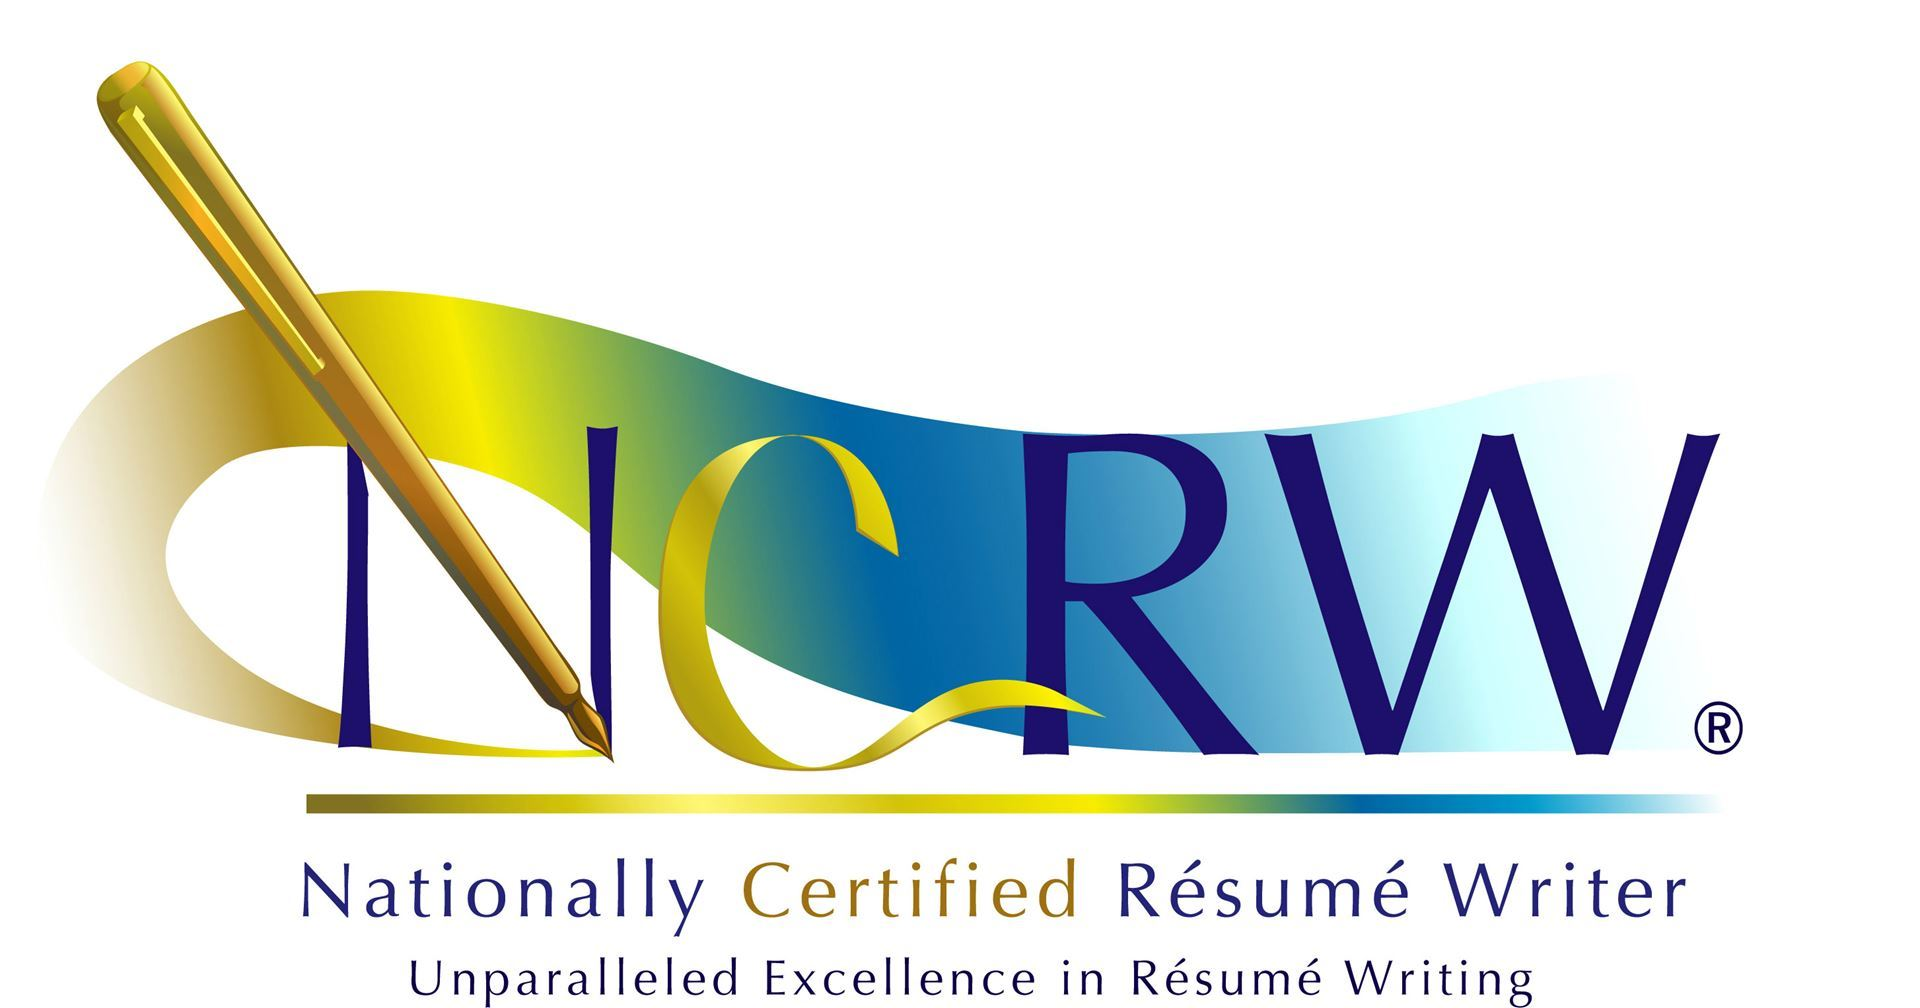 resume Resume Writer the national writers association find a nationally certified resume must first prove their seniority in and commitment to writing industry by p